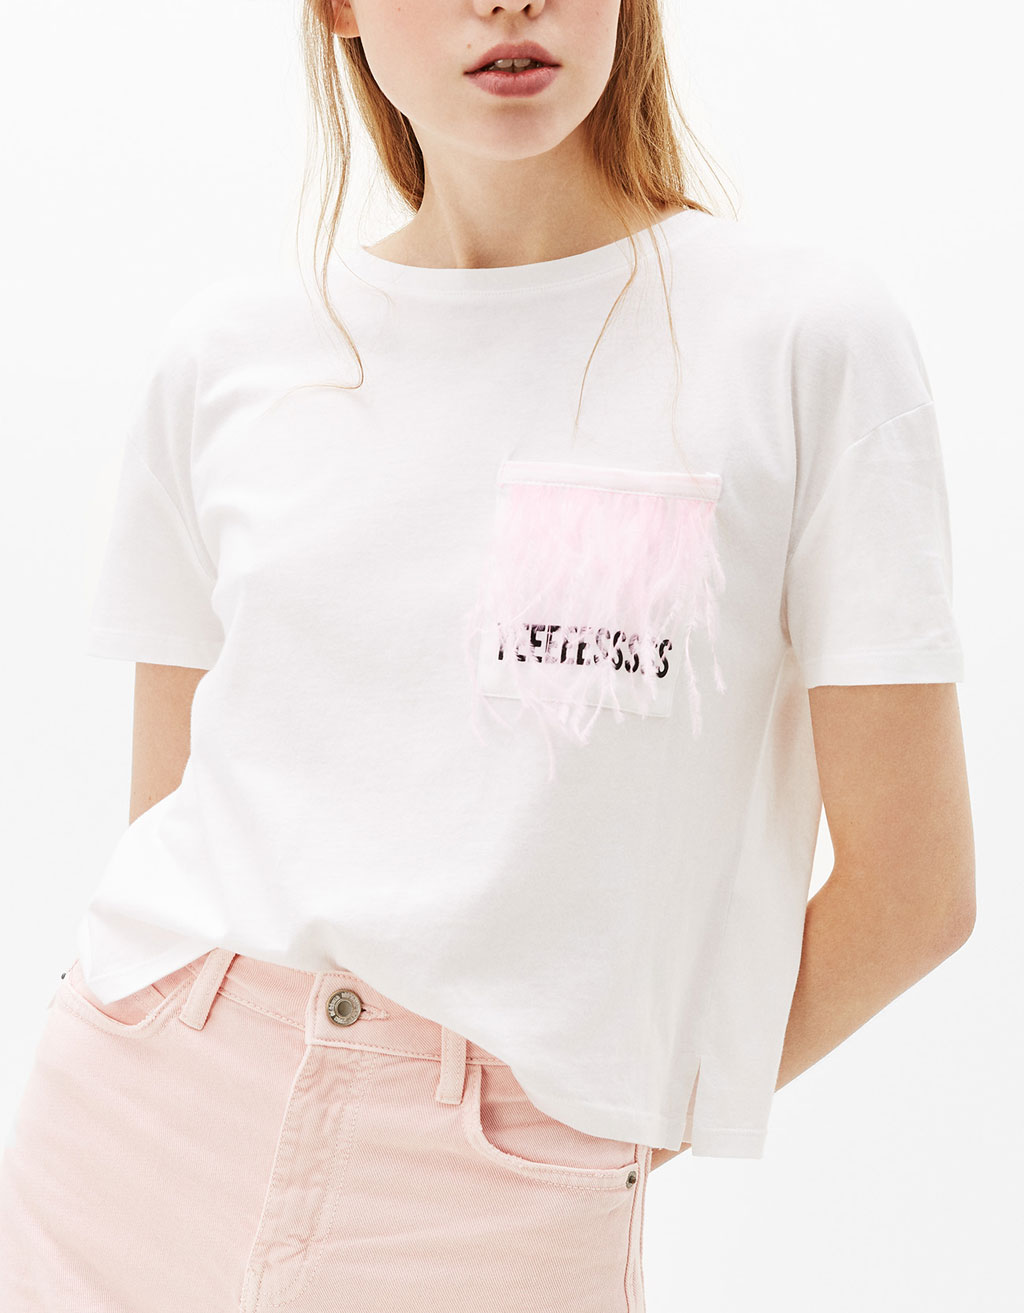 Cropped T-shirt with feather detail pocket